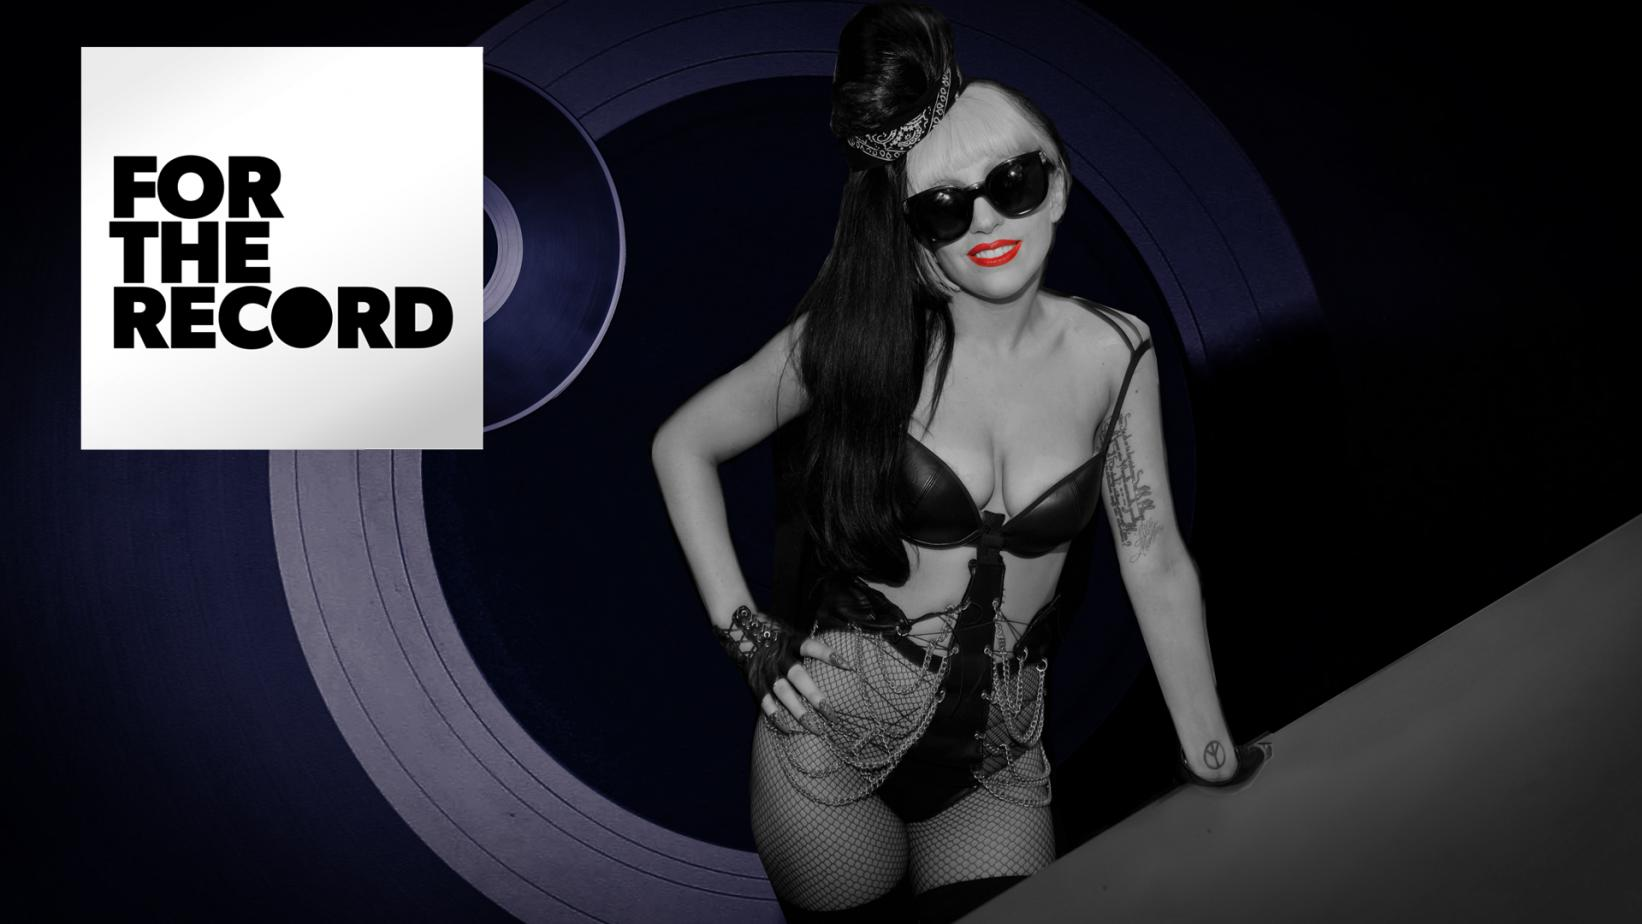 Artwork for For The Record episode on Lady Gaga's 'Born This Way'